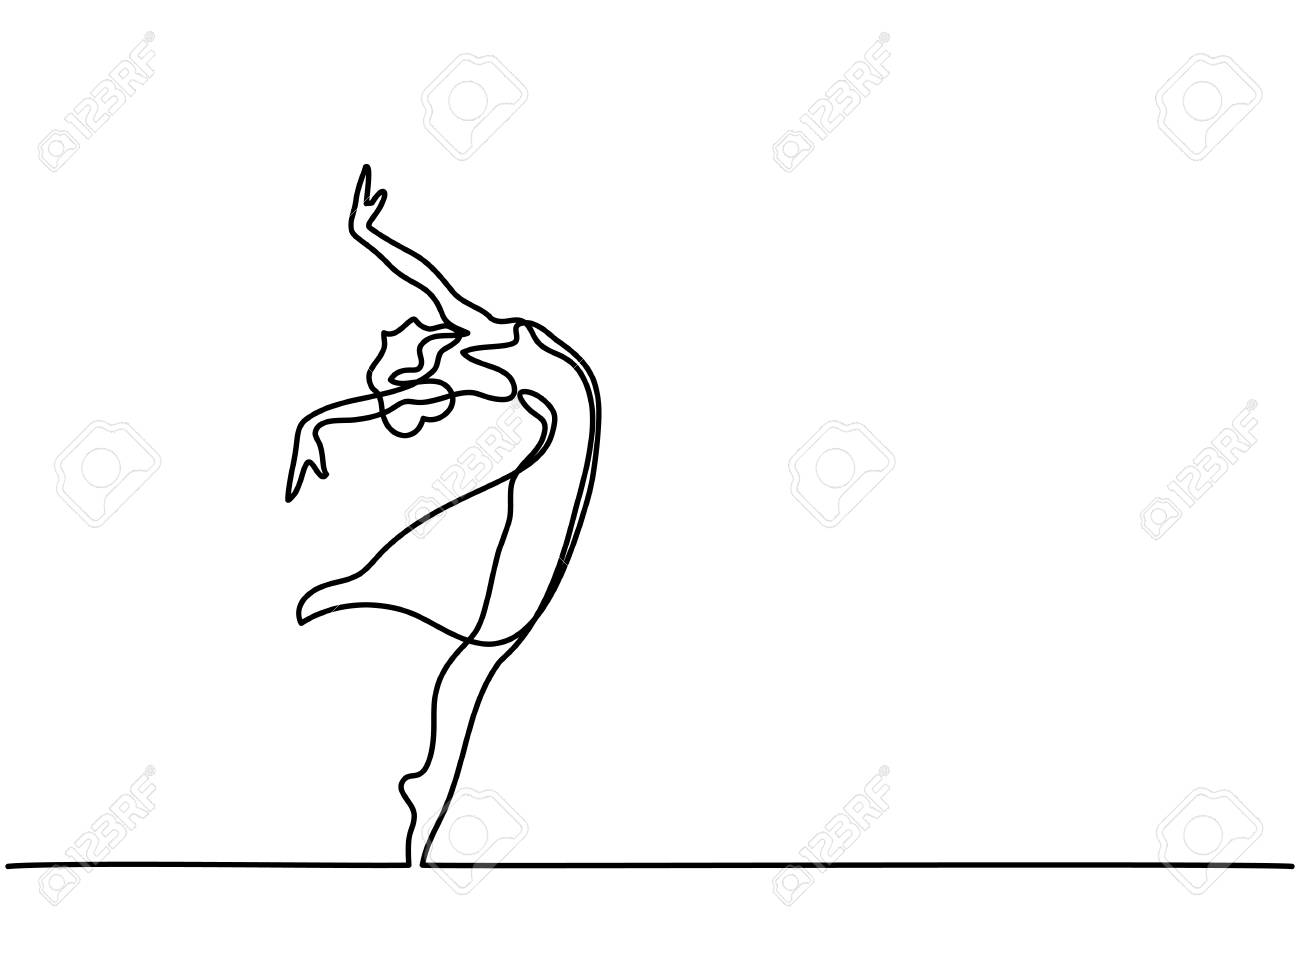 Dancer Outline Drawing Wiring Diagrams Colony Two Handle Kitchen Faucet Parts Diagram For Models 2475220 Continuous Line Art Ballet Ballerina Vector Rh 123rf Com Leap